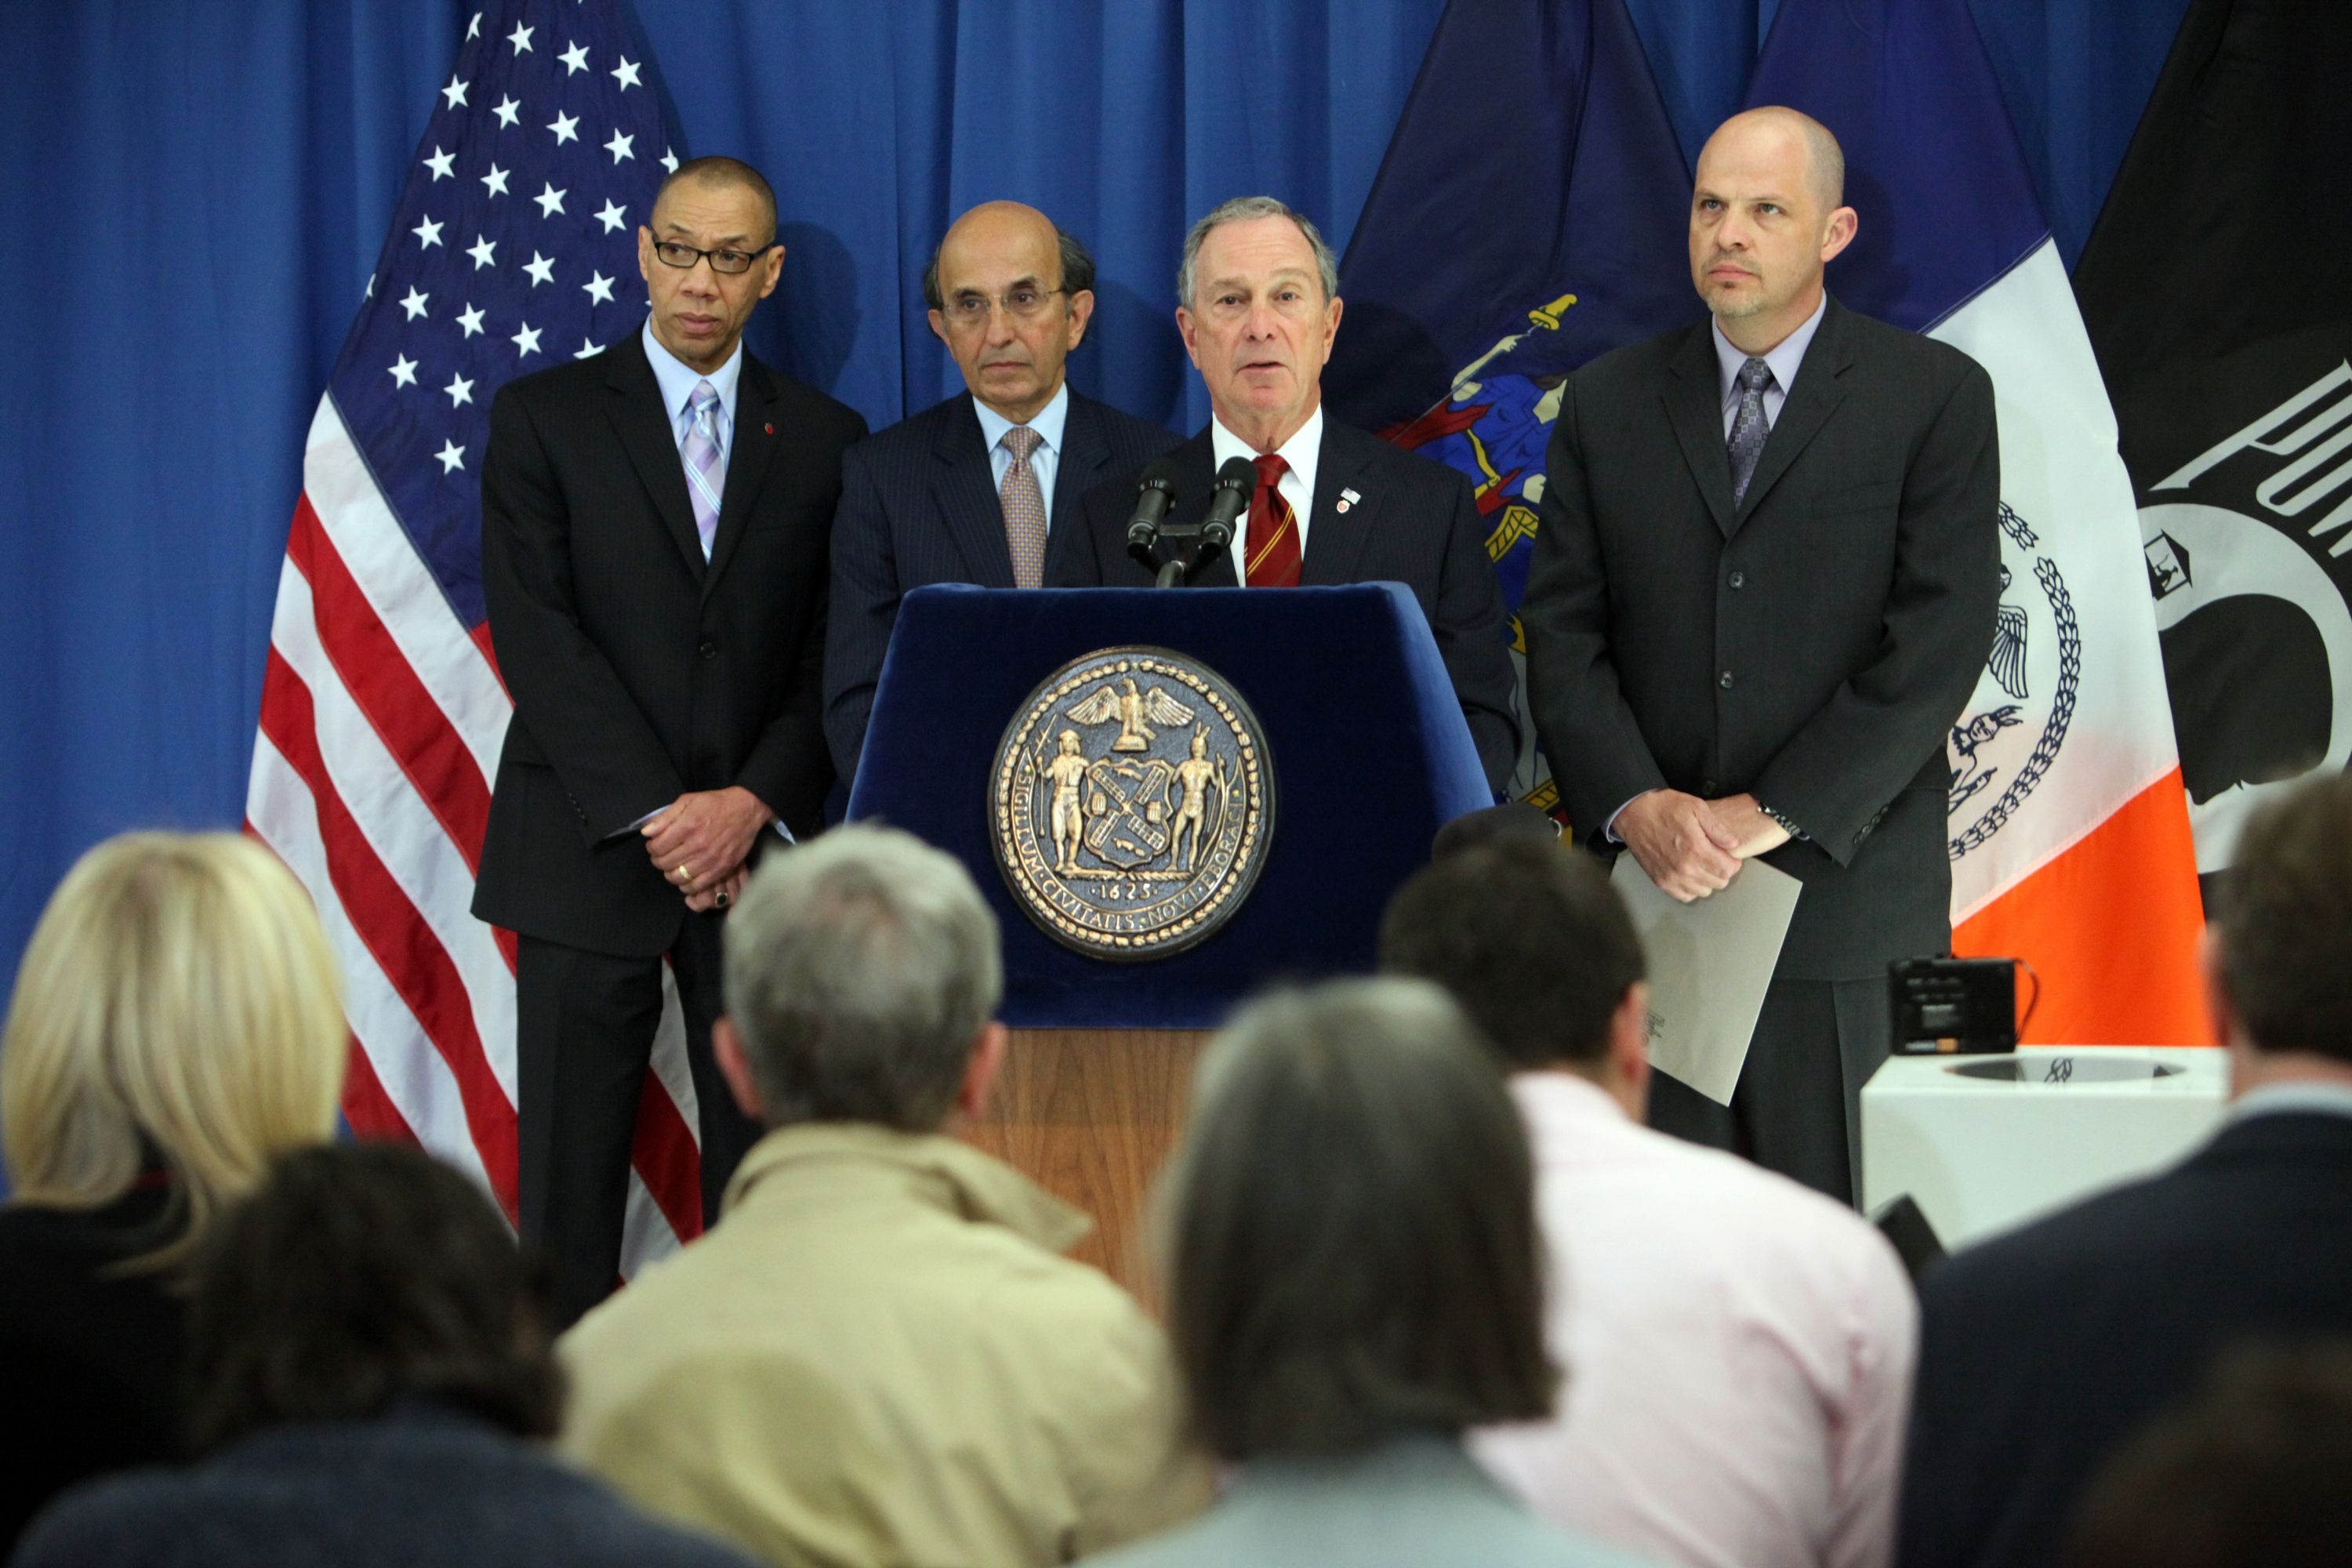 Mayor Michael Bloomberg speaks at a 2010 press conference with United Federation of Teachers President Michael Mulgrew (right), Schools Chancellor Joel Klein (left), and Deputy Mayor for Education Dennis Walcott (far left).